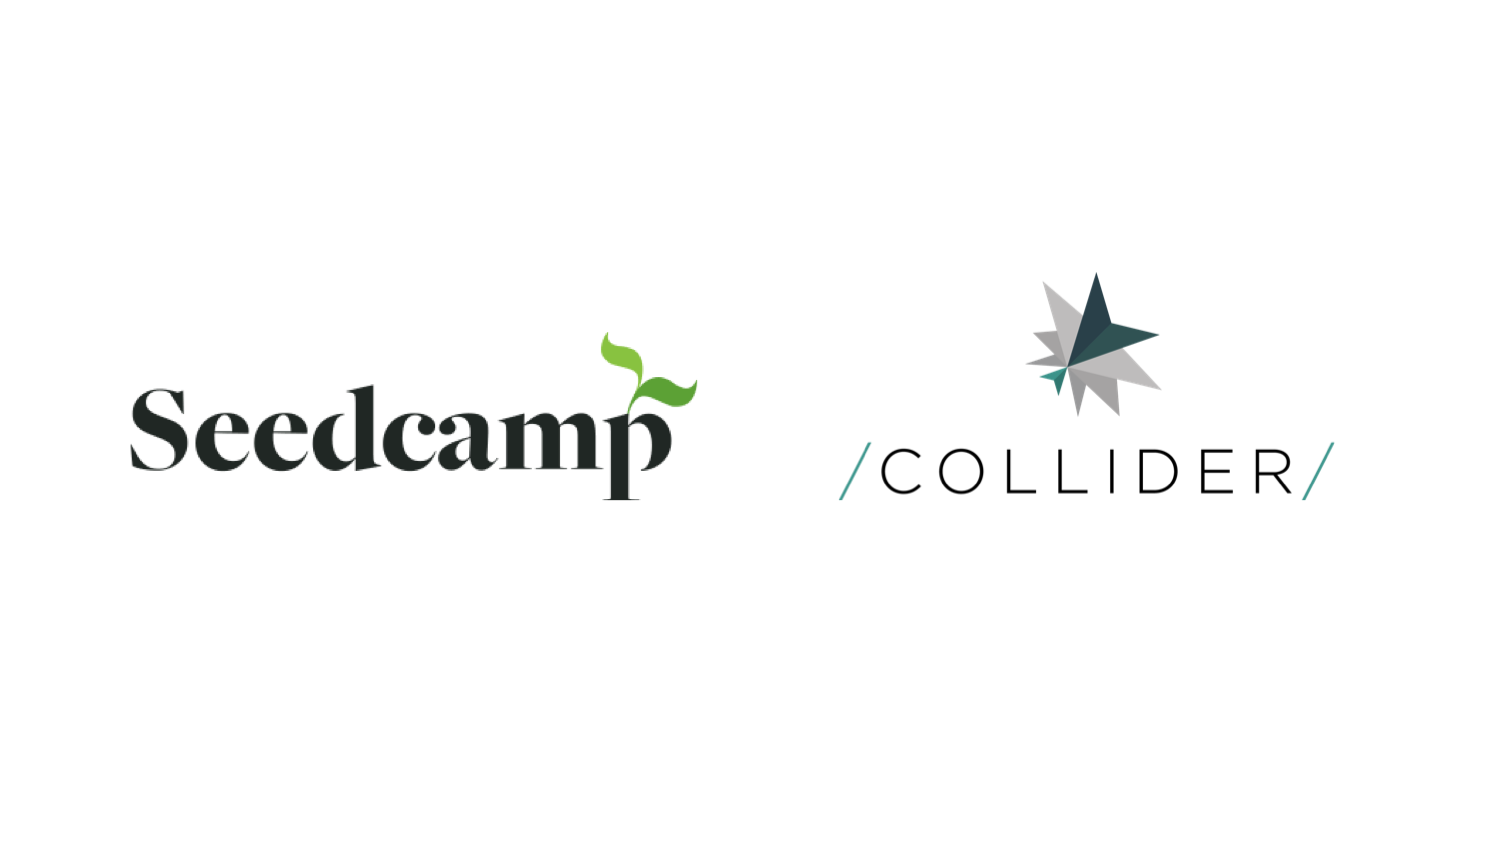 Seedcamp Collider.png